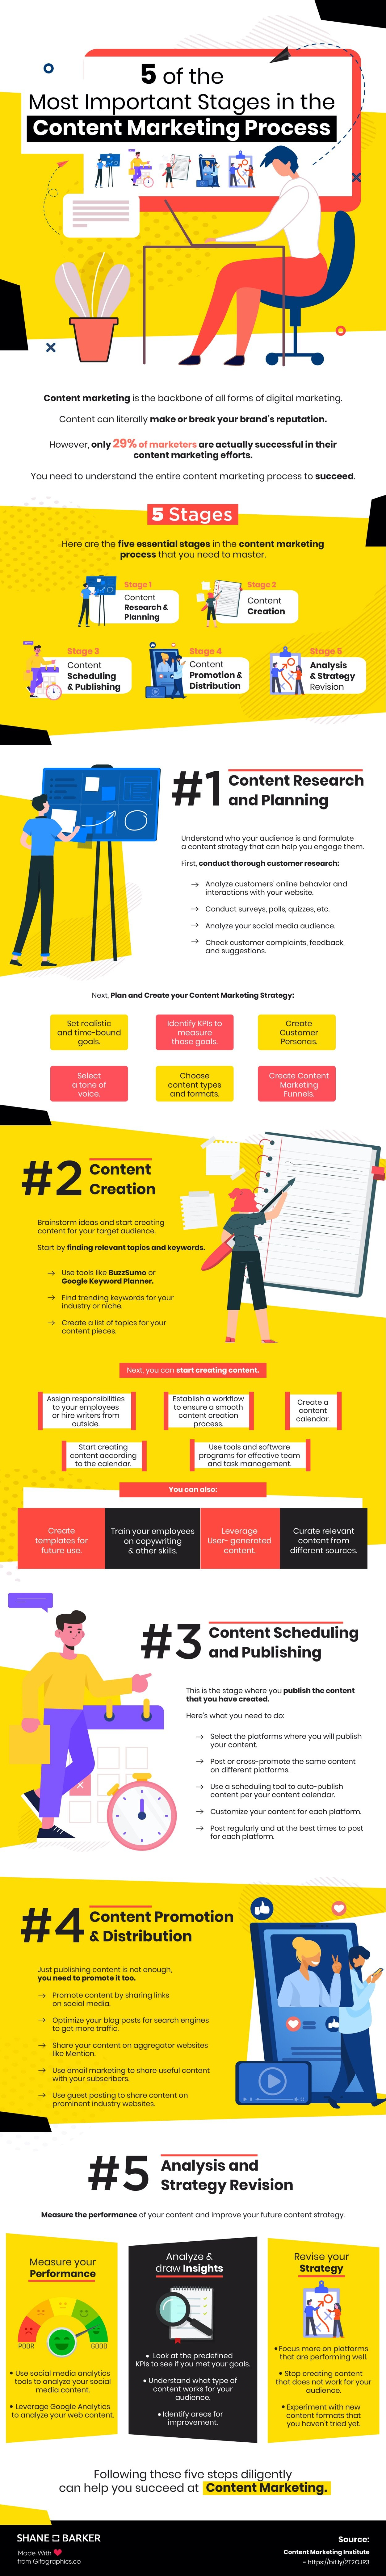 How to Create an Effective Content Marketing Process: A Small Guide